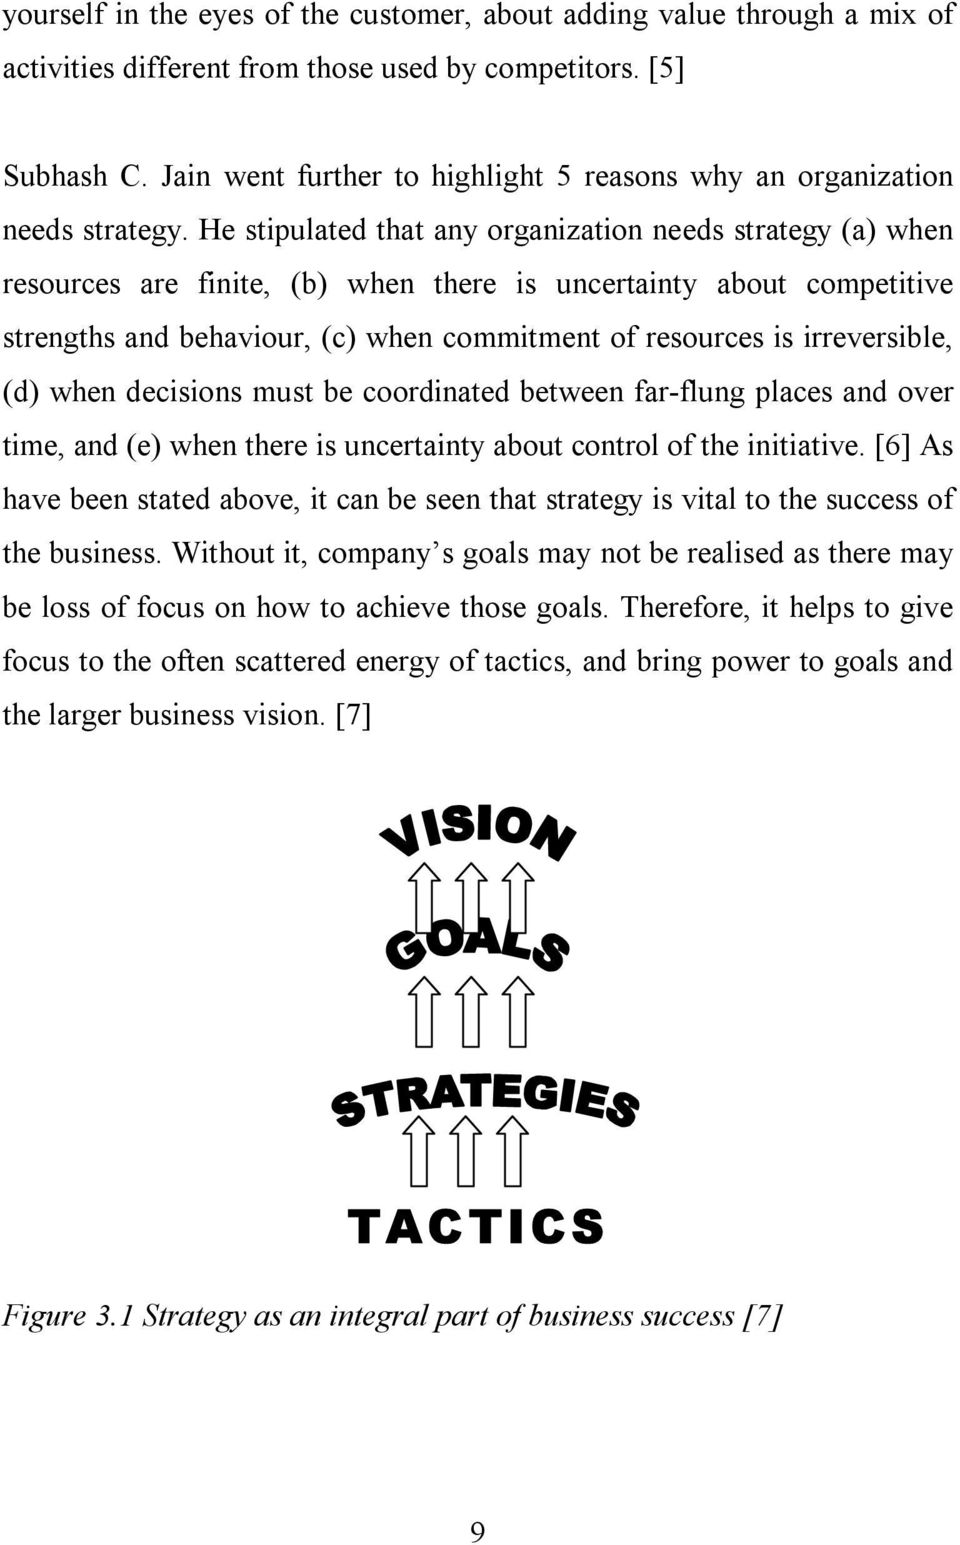 He stipulated that any organization needs strategy (a) when resources are finite, (b) when there is uncertainty about competitive strengths and behaviour, (c) when commitment of resources is